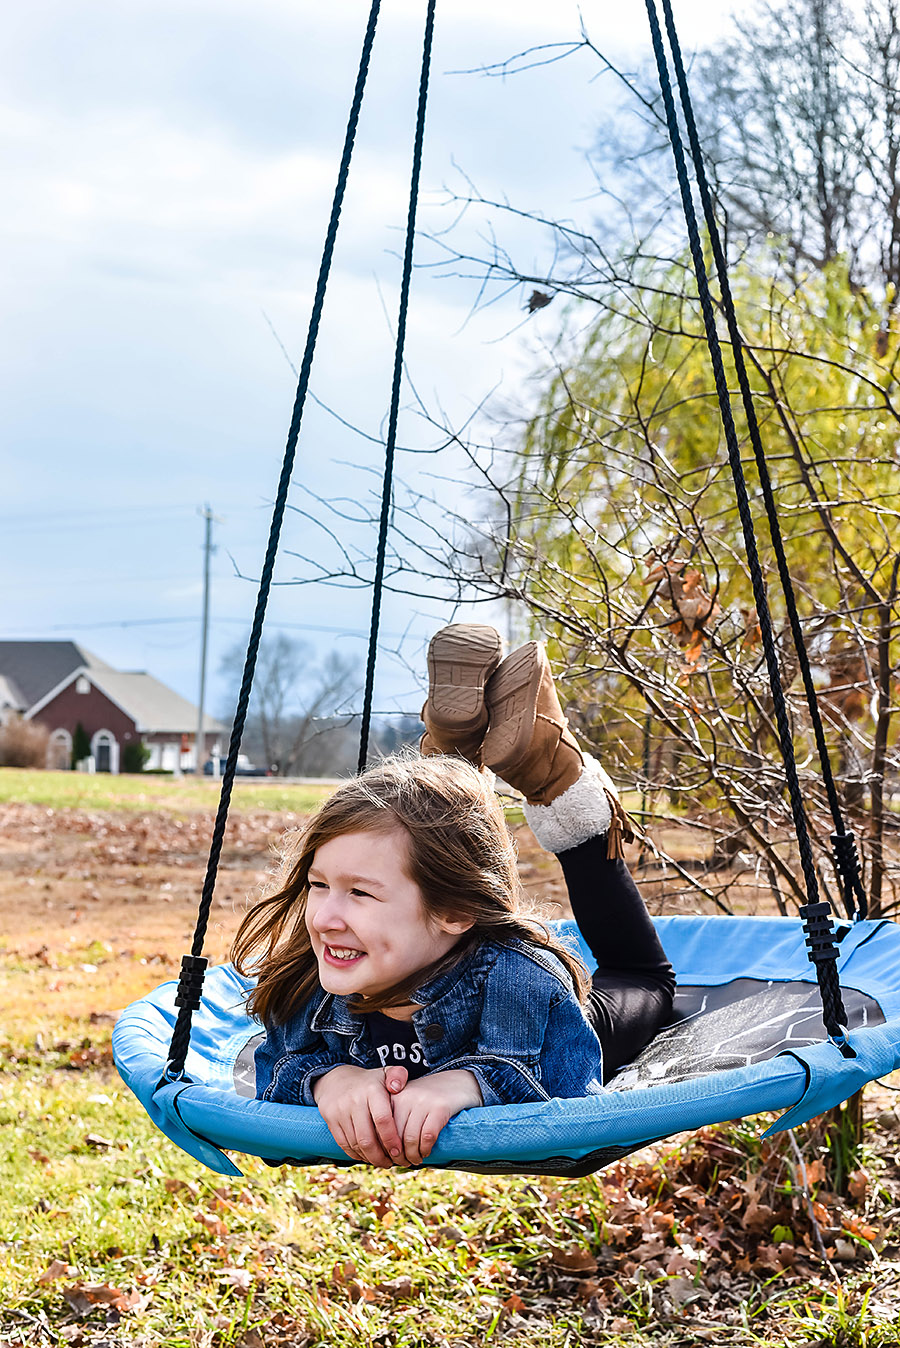 Play Wild Tree Swing - Simple Toys Gift Ideas - Intentional Purposeful Gift Guide for Kids - Our Handcrafted Life